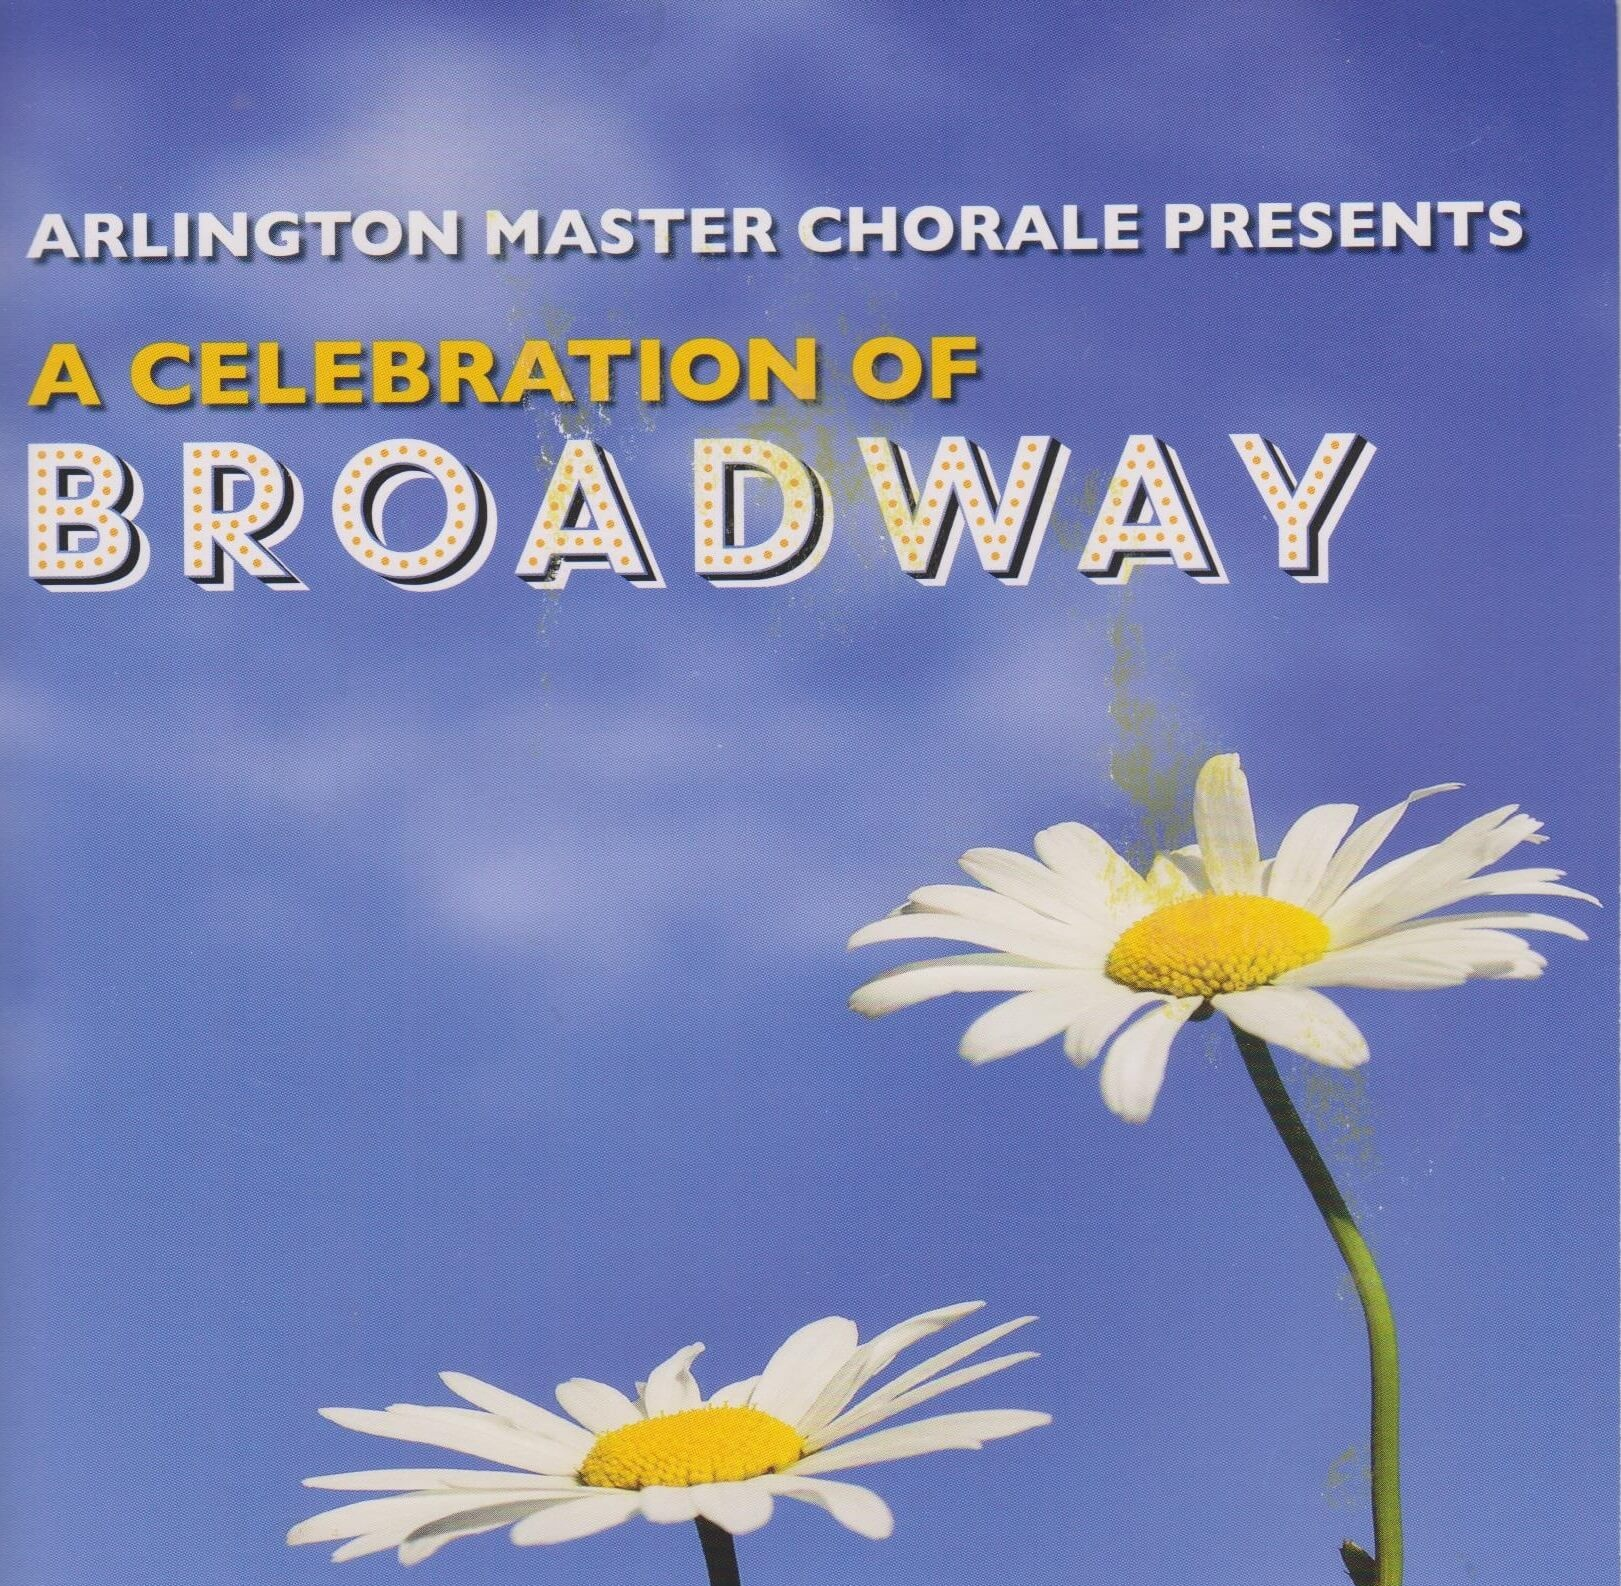 """A fun collection of Broadway favorites from Sweet Charity, Funny Girl, South Pacific, and more with the Arlington Master Chorale and our own """"Fling Combo"""" instrumentals."""